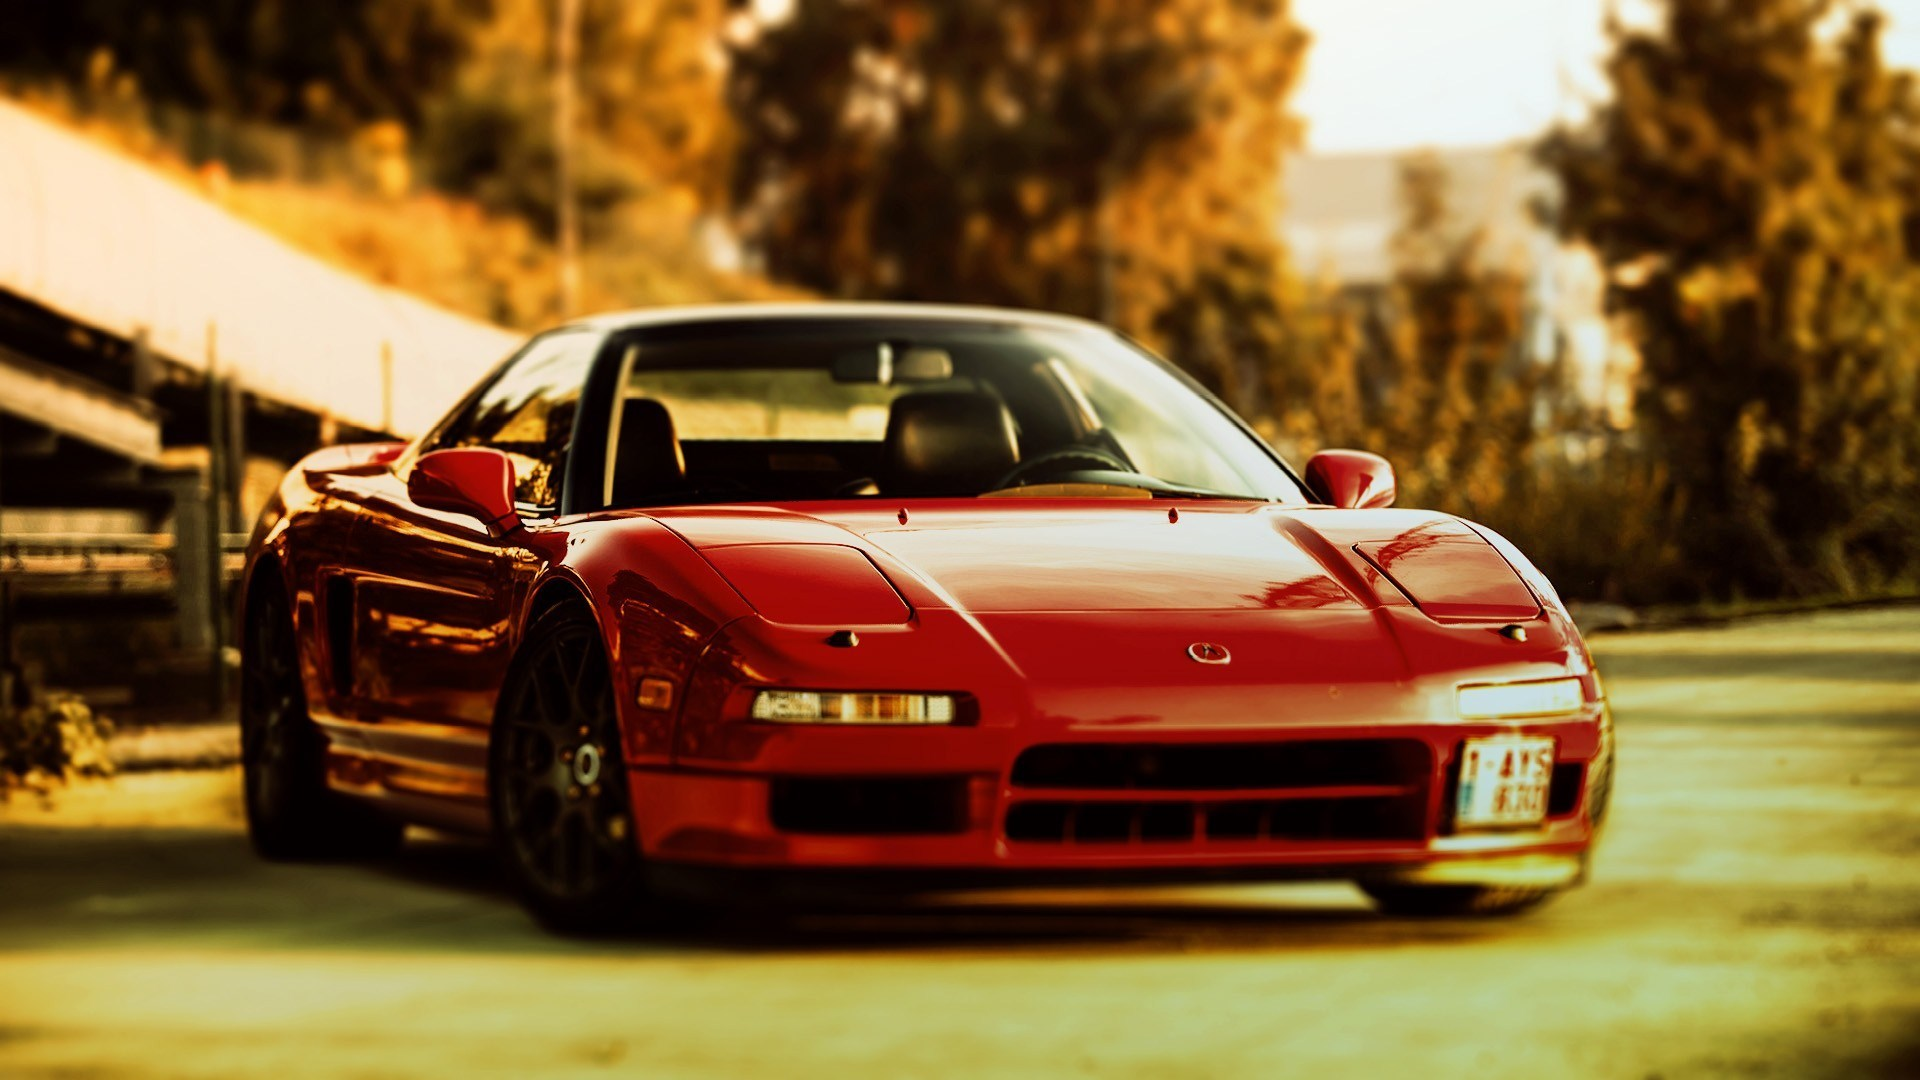 Your stunning acura nsx wallpaper has landed voltagebd Gallery